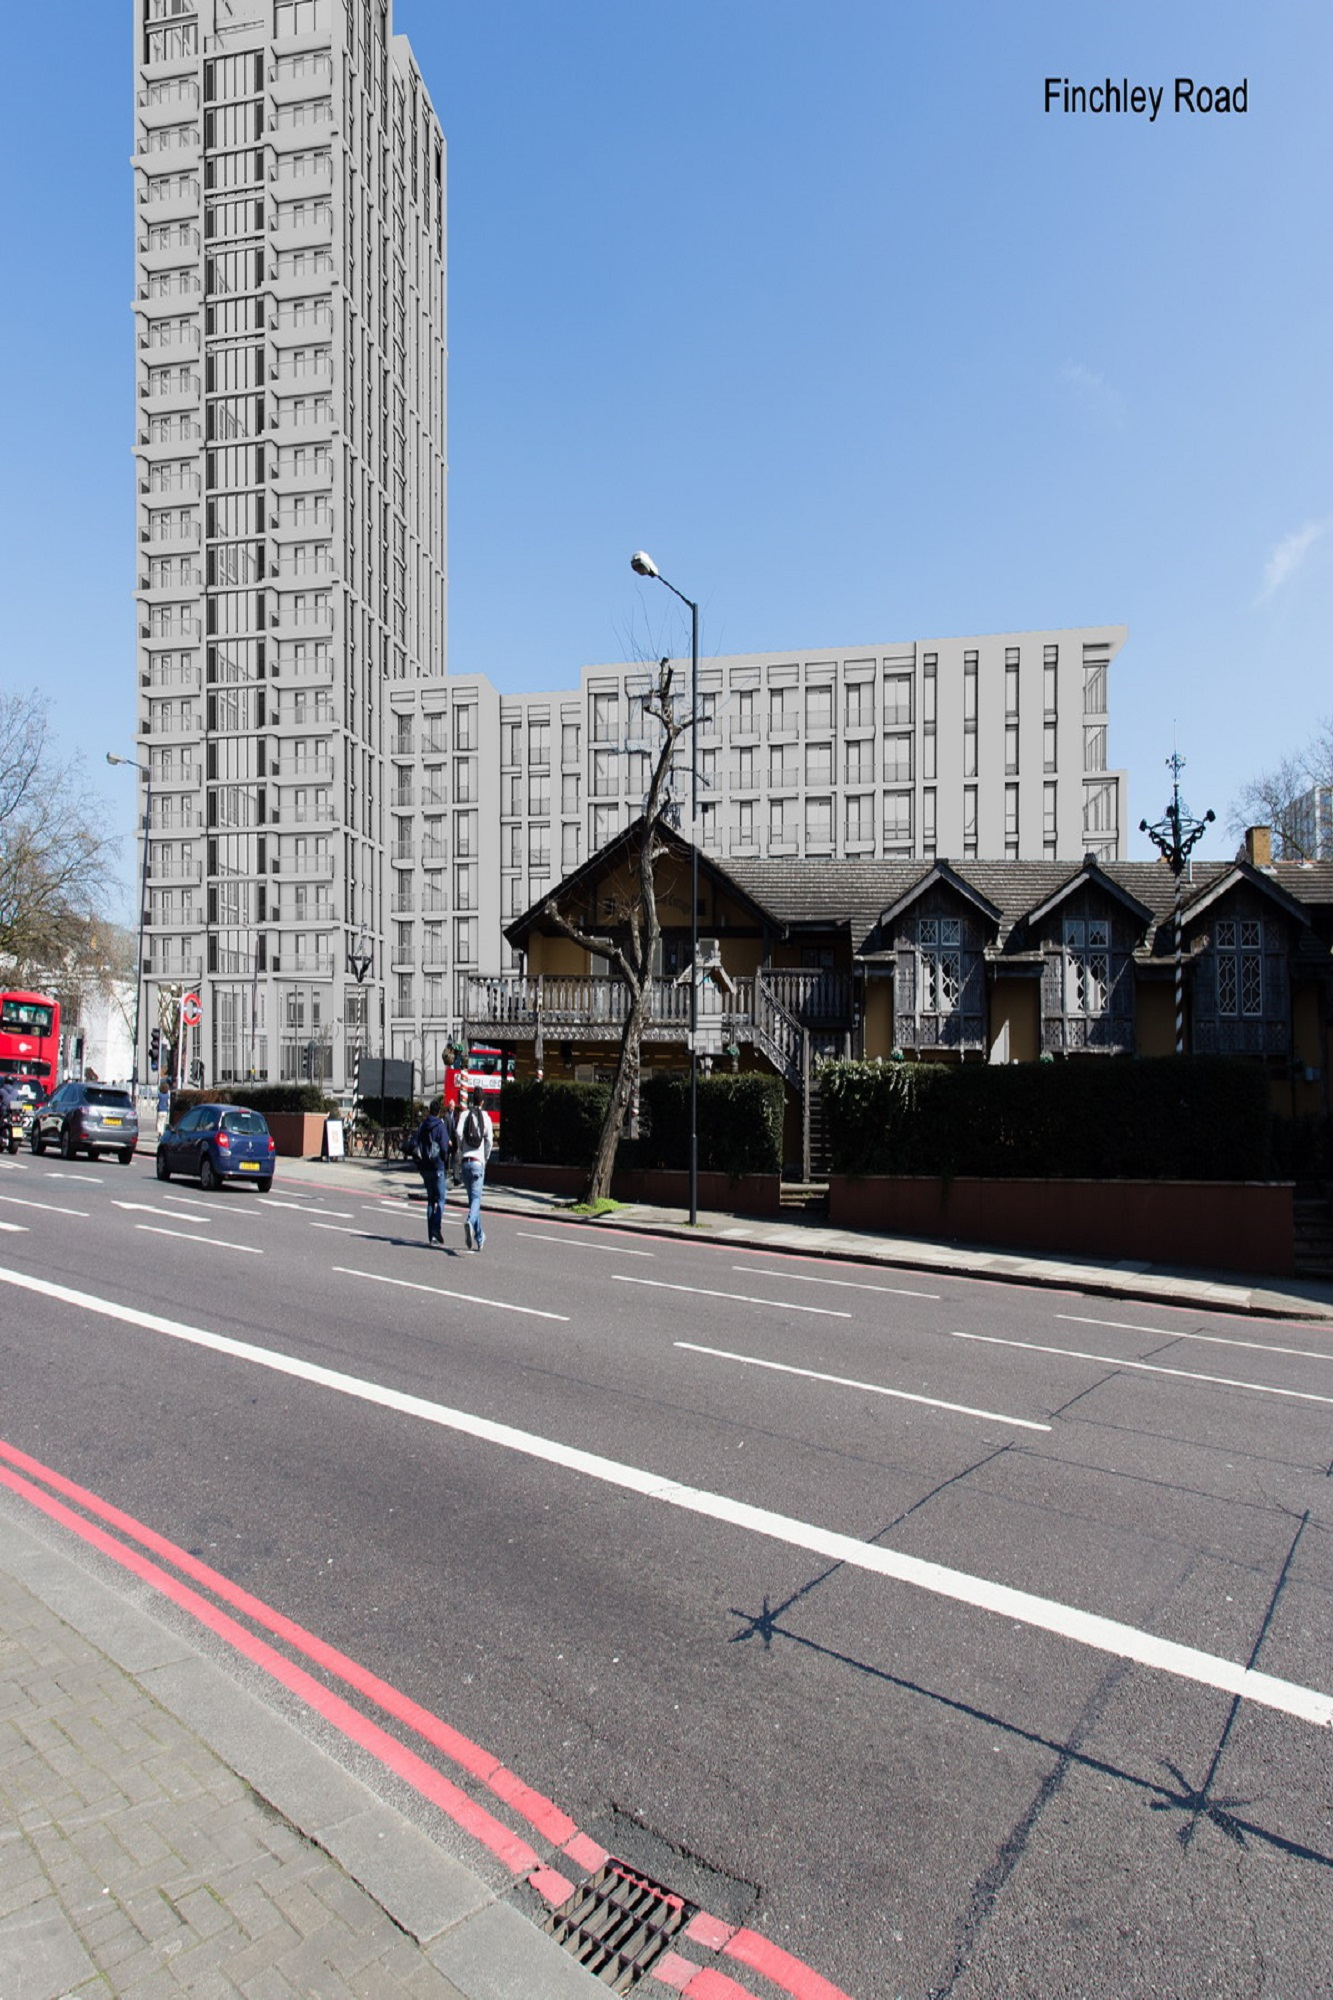 3D model dropped into the photograph - Swiss Cottage London